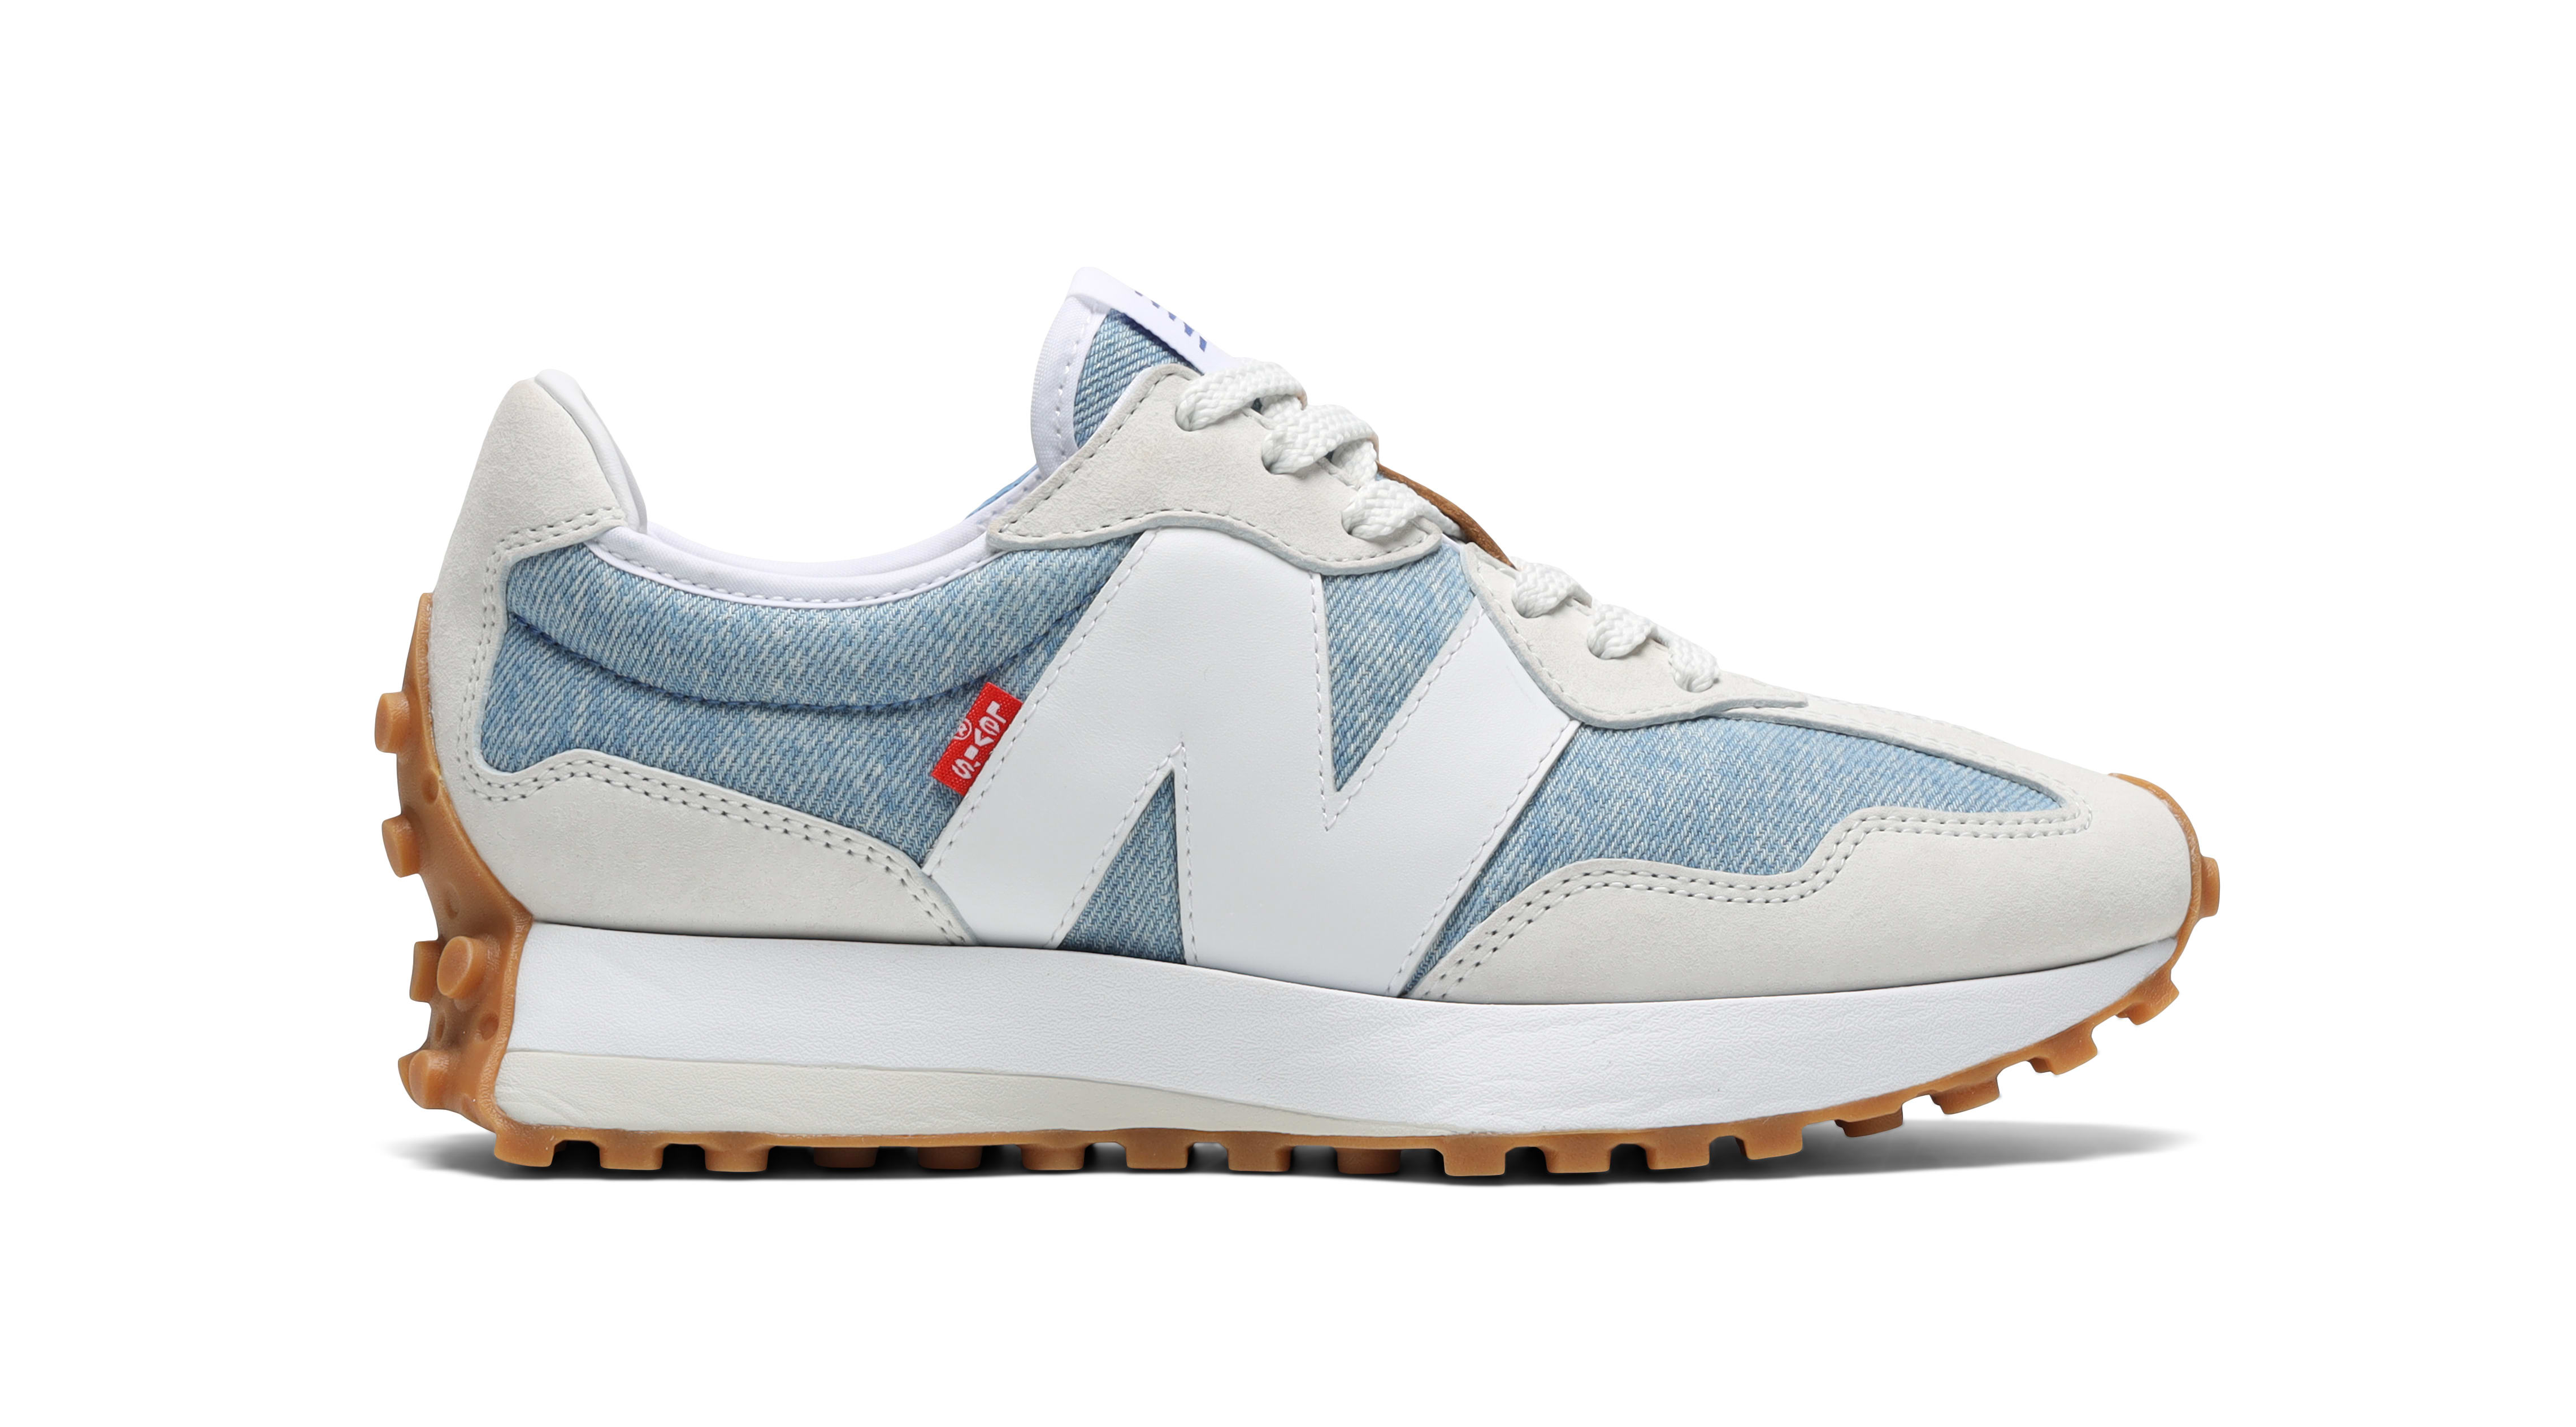 Levi's x New Balance Women's 327 Lateral